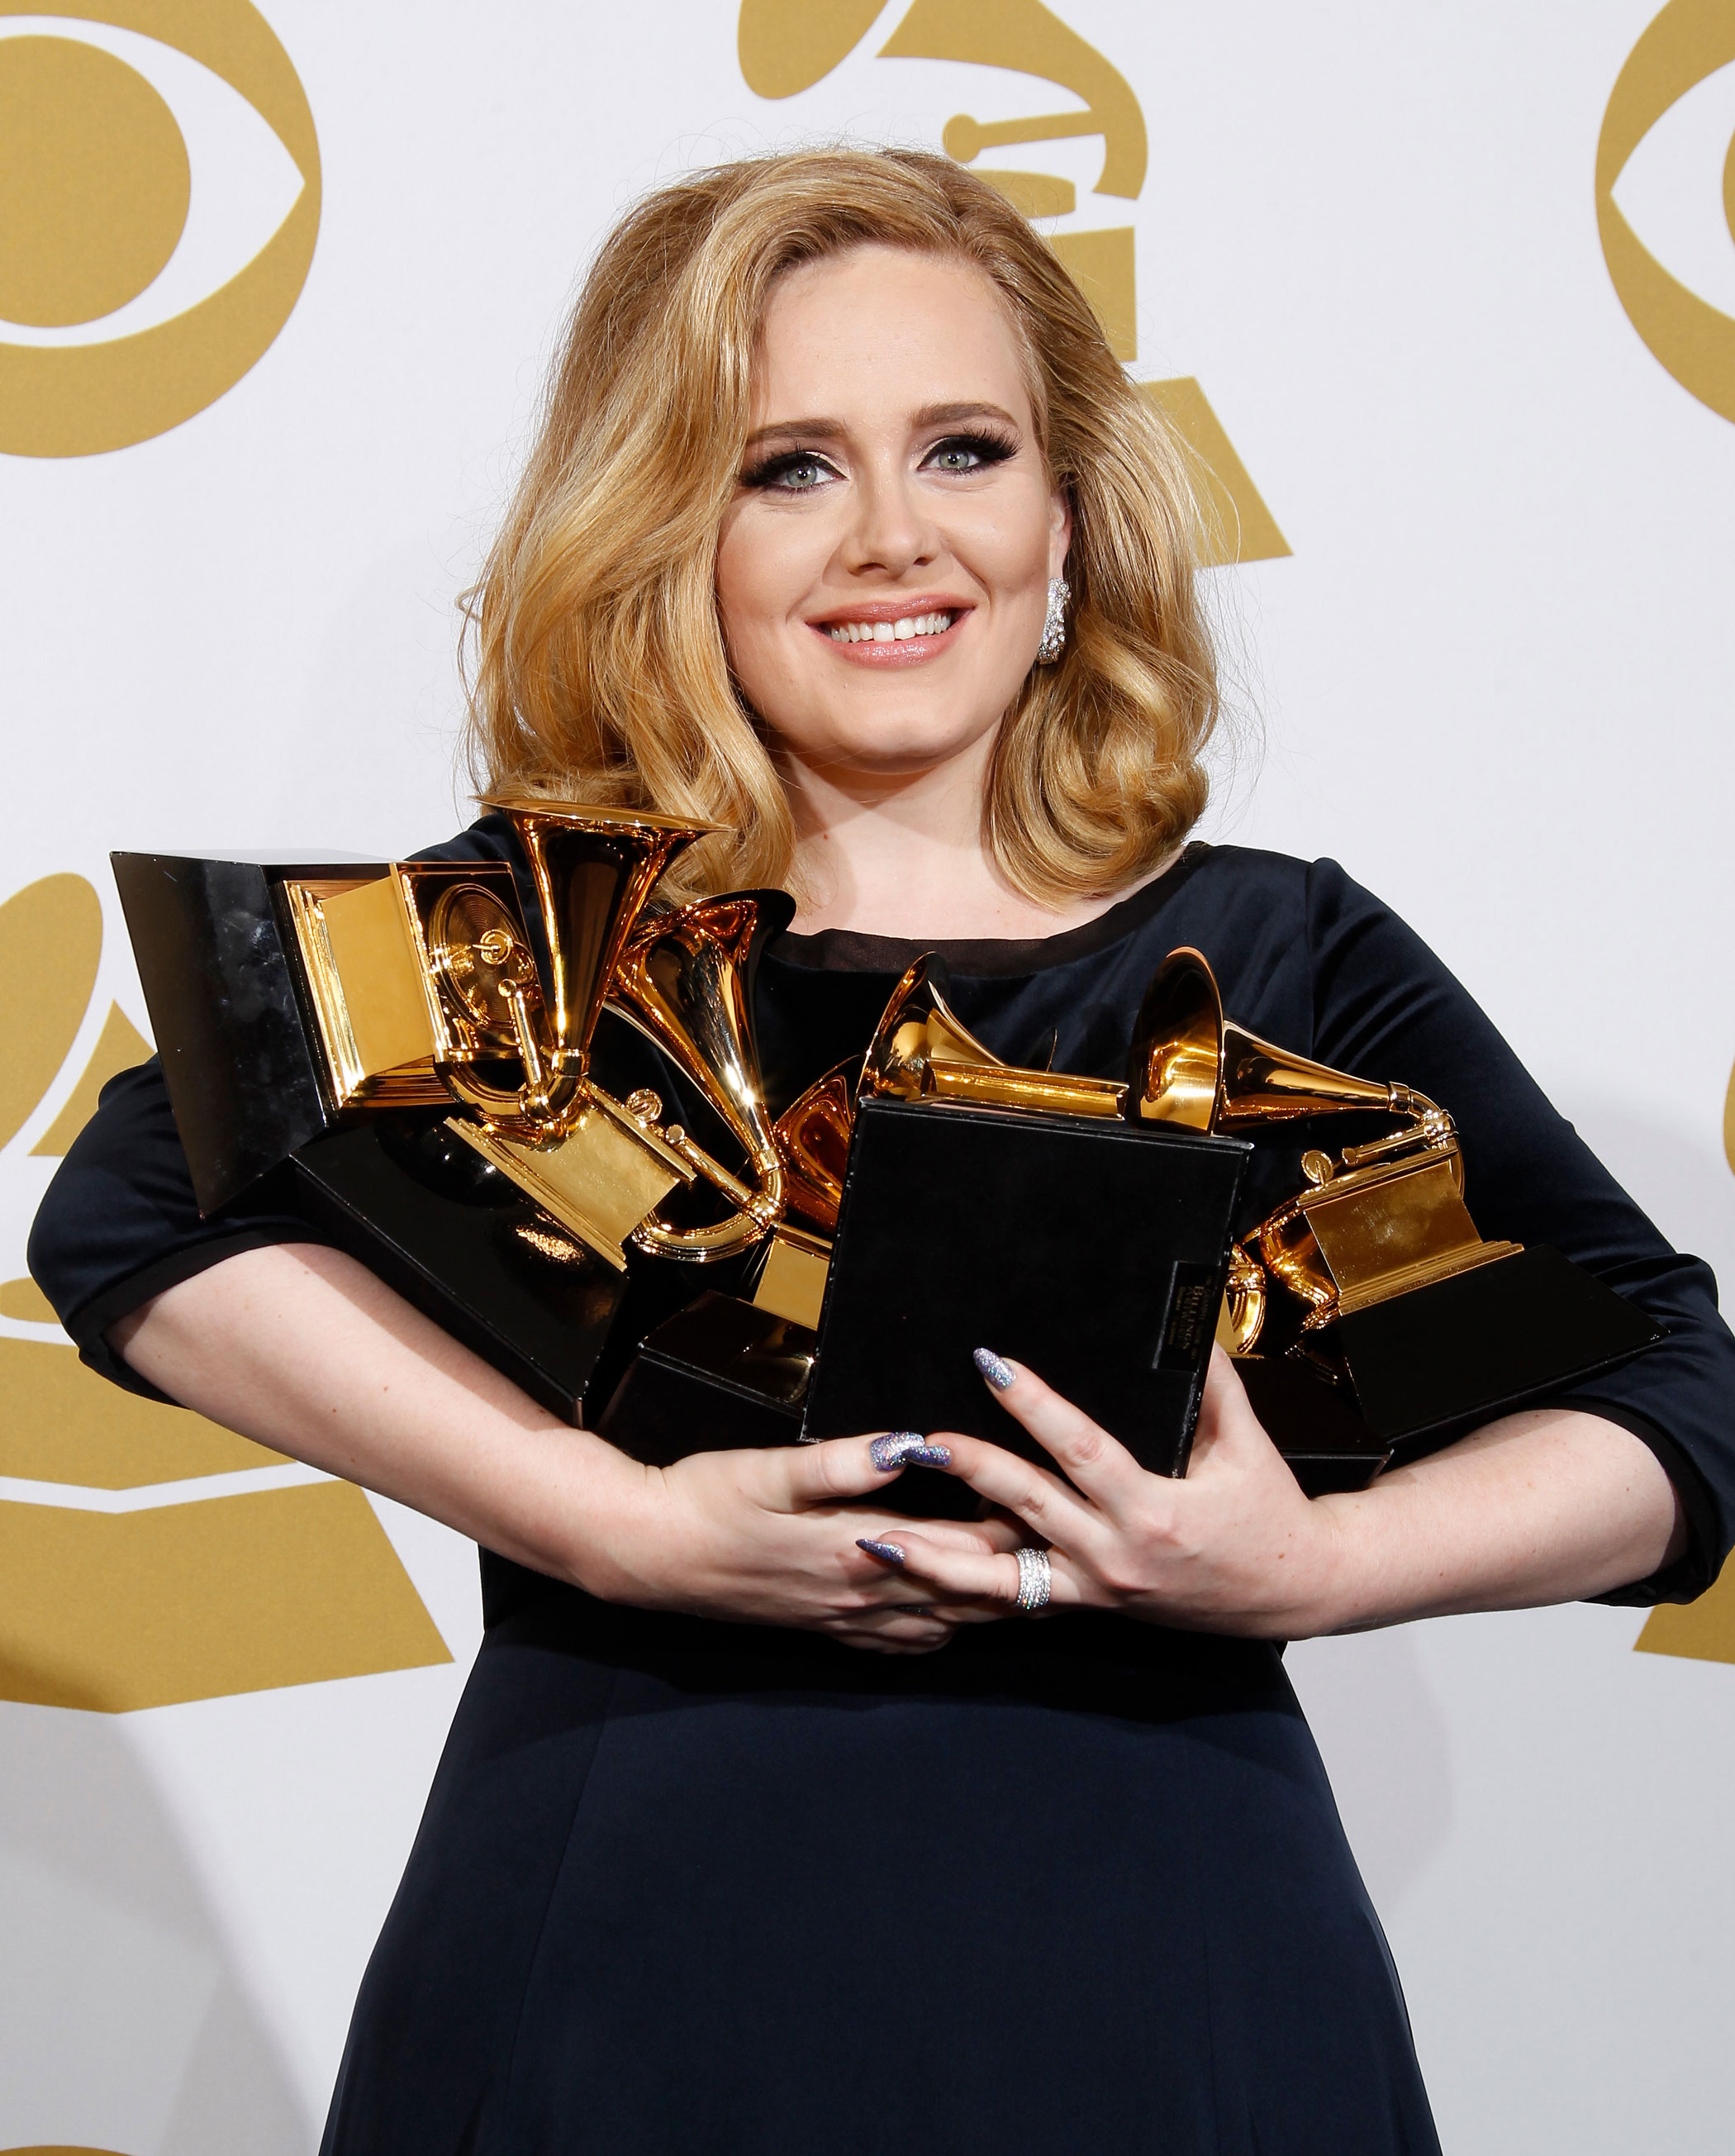 Adele poses in the press room at the 54th Annual GRAMMY Awards in Los Angeles on Feb. 12, 2012.